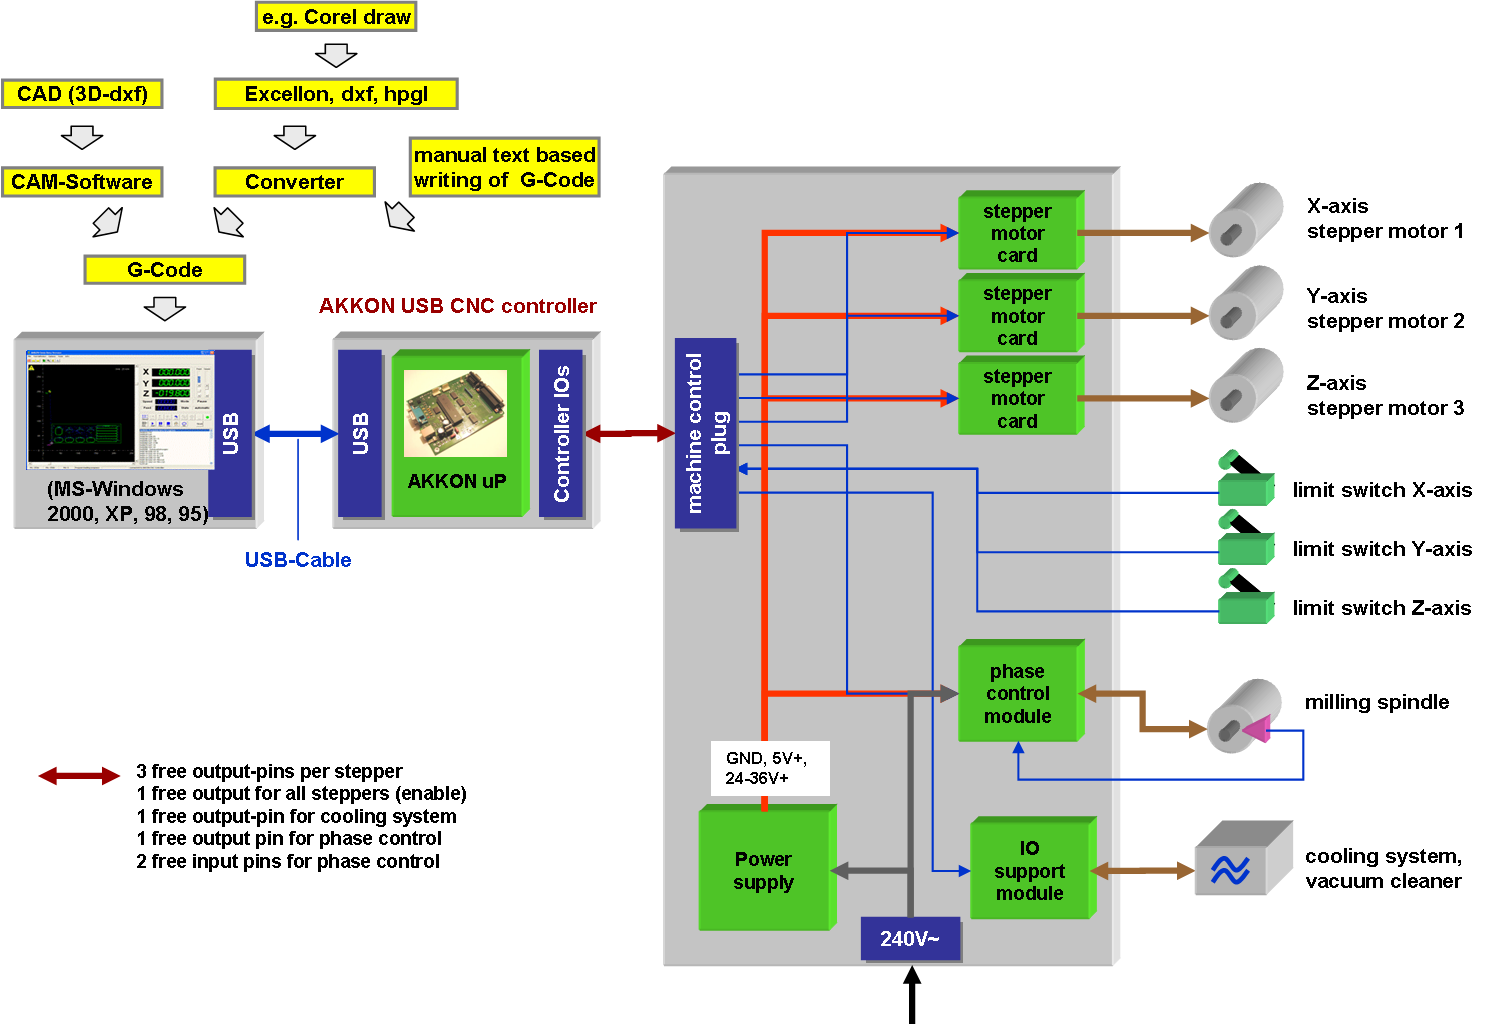 Jet D Metal Lathe X together with Fishbone Chart further Maxresdefault additionally E B Ee C E E furthermore Akkon Cnc Controller Concept. on lathe machine diagram